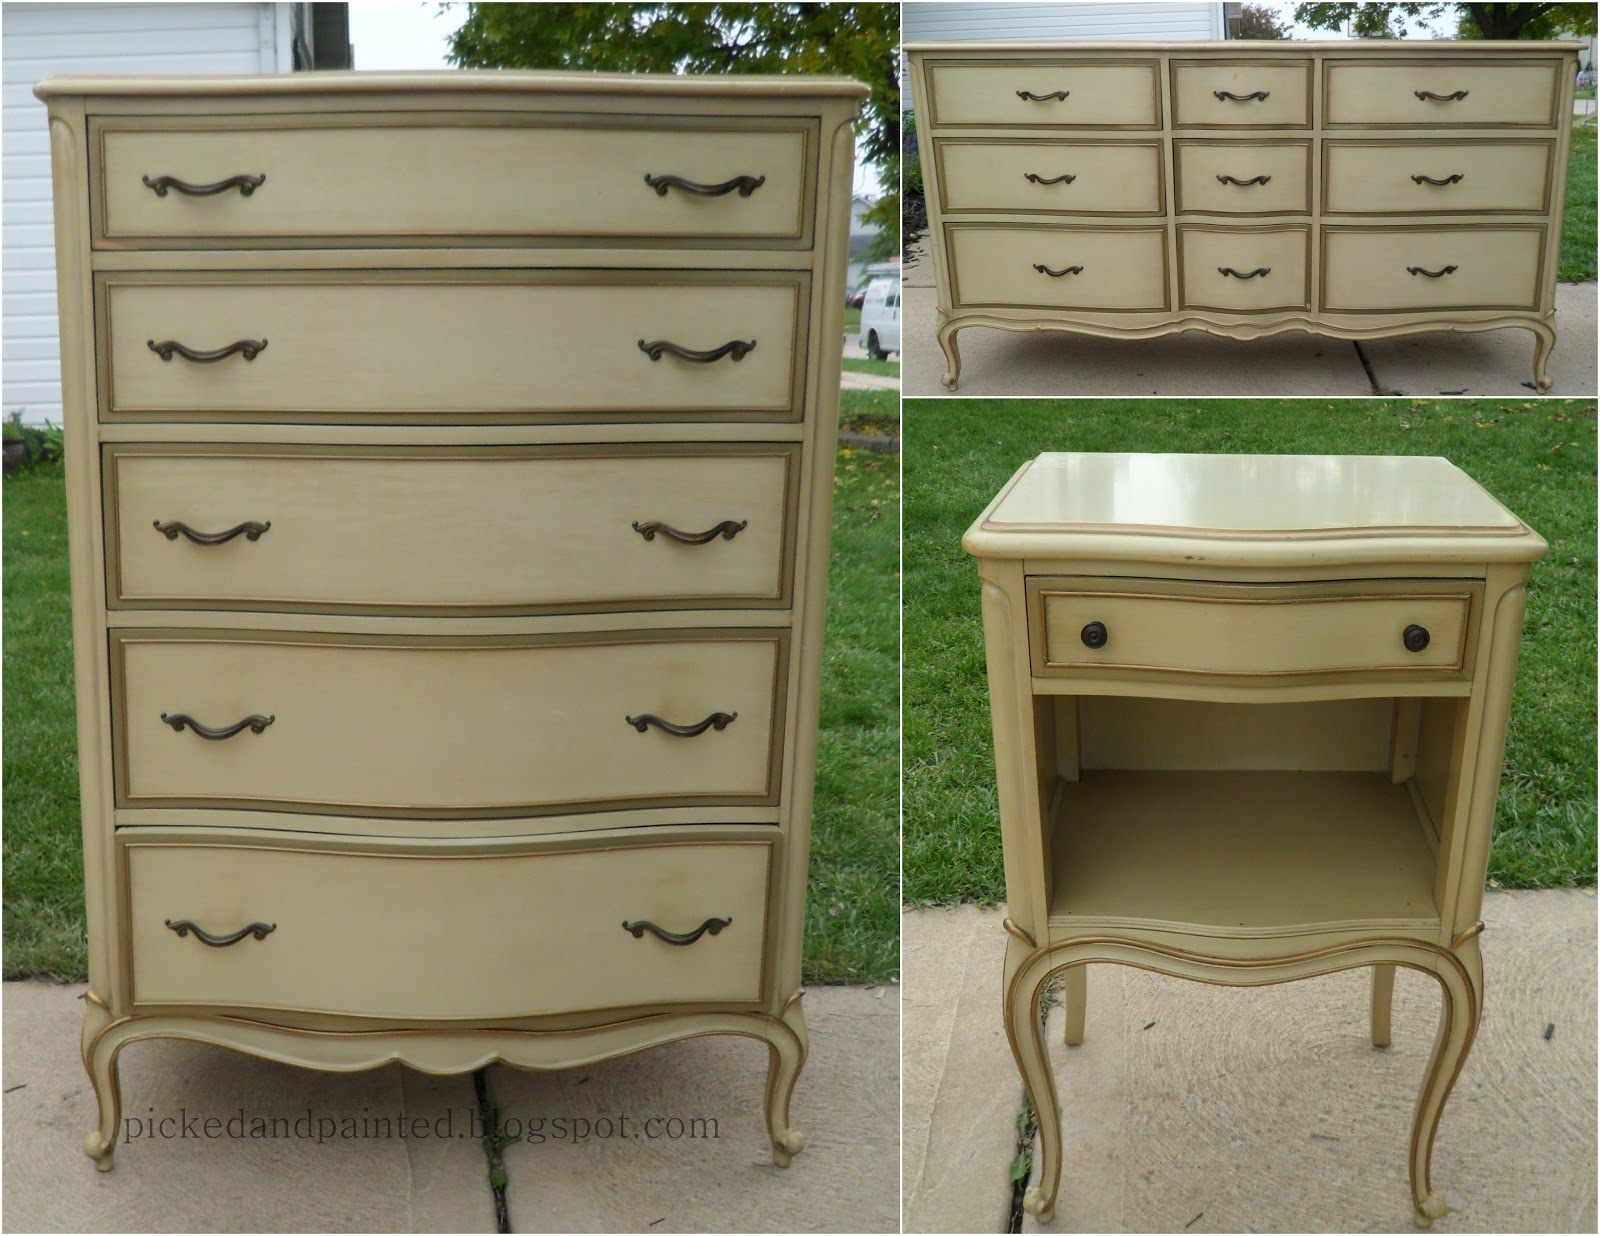 Helen nichole designs french provincial dresser set for Furniture in french